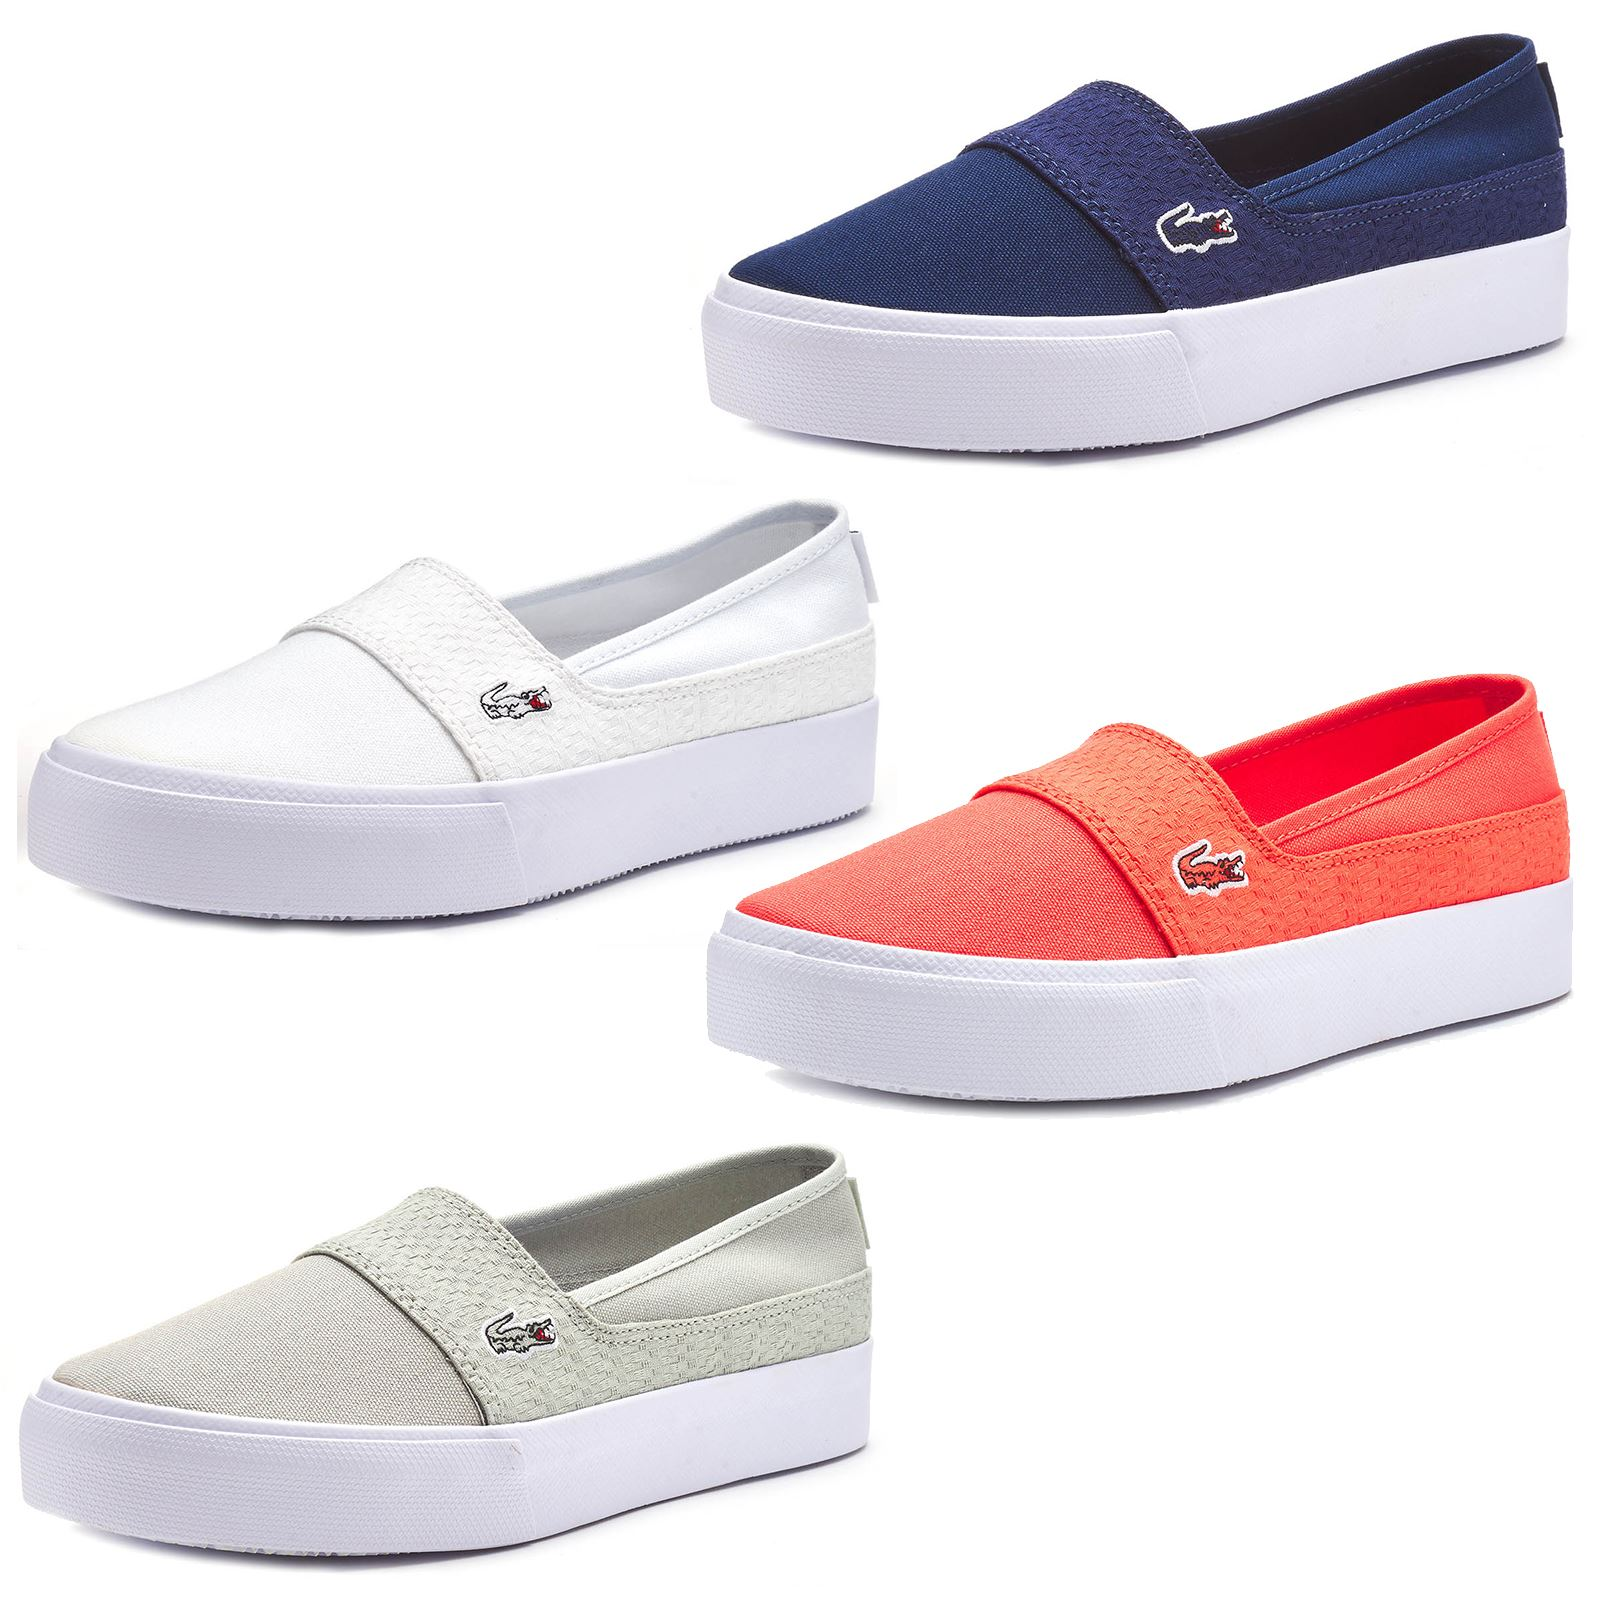 Lacoste Marice Slipper Canvas Zu Turnschuhe Details Plateau Plus Grand 2 Damen Cfa 119 8PwX0knO